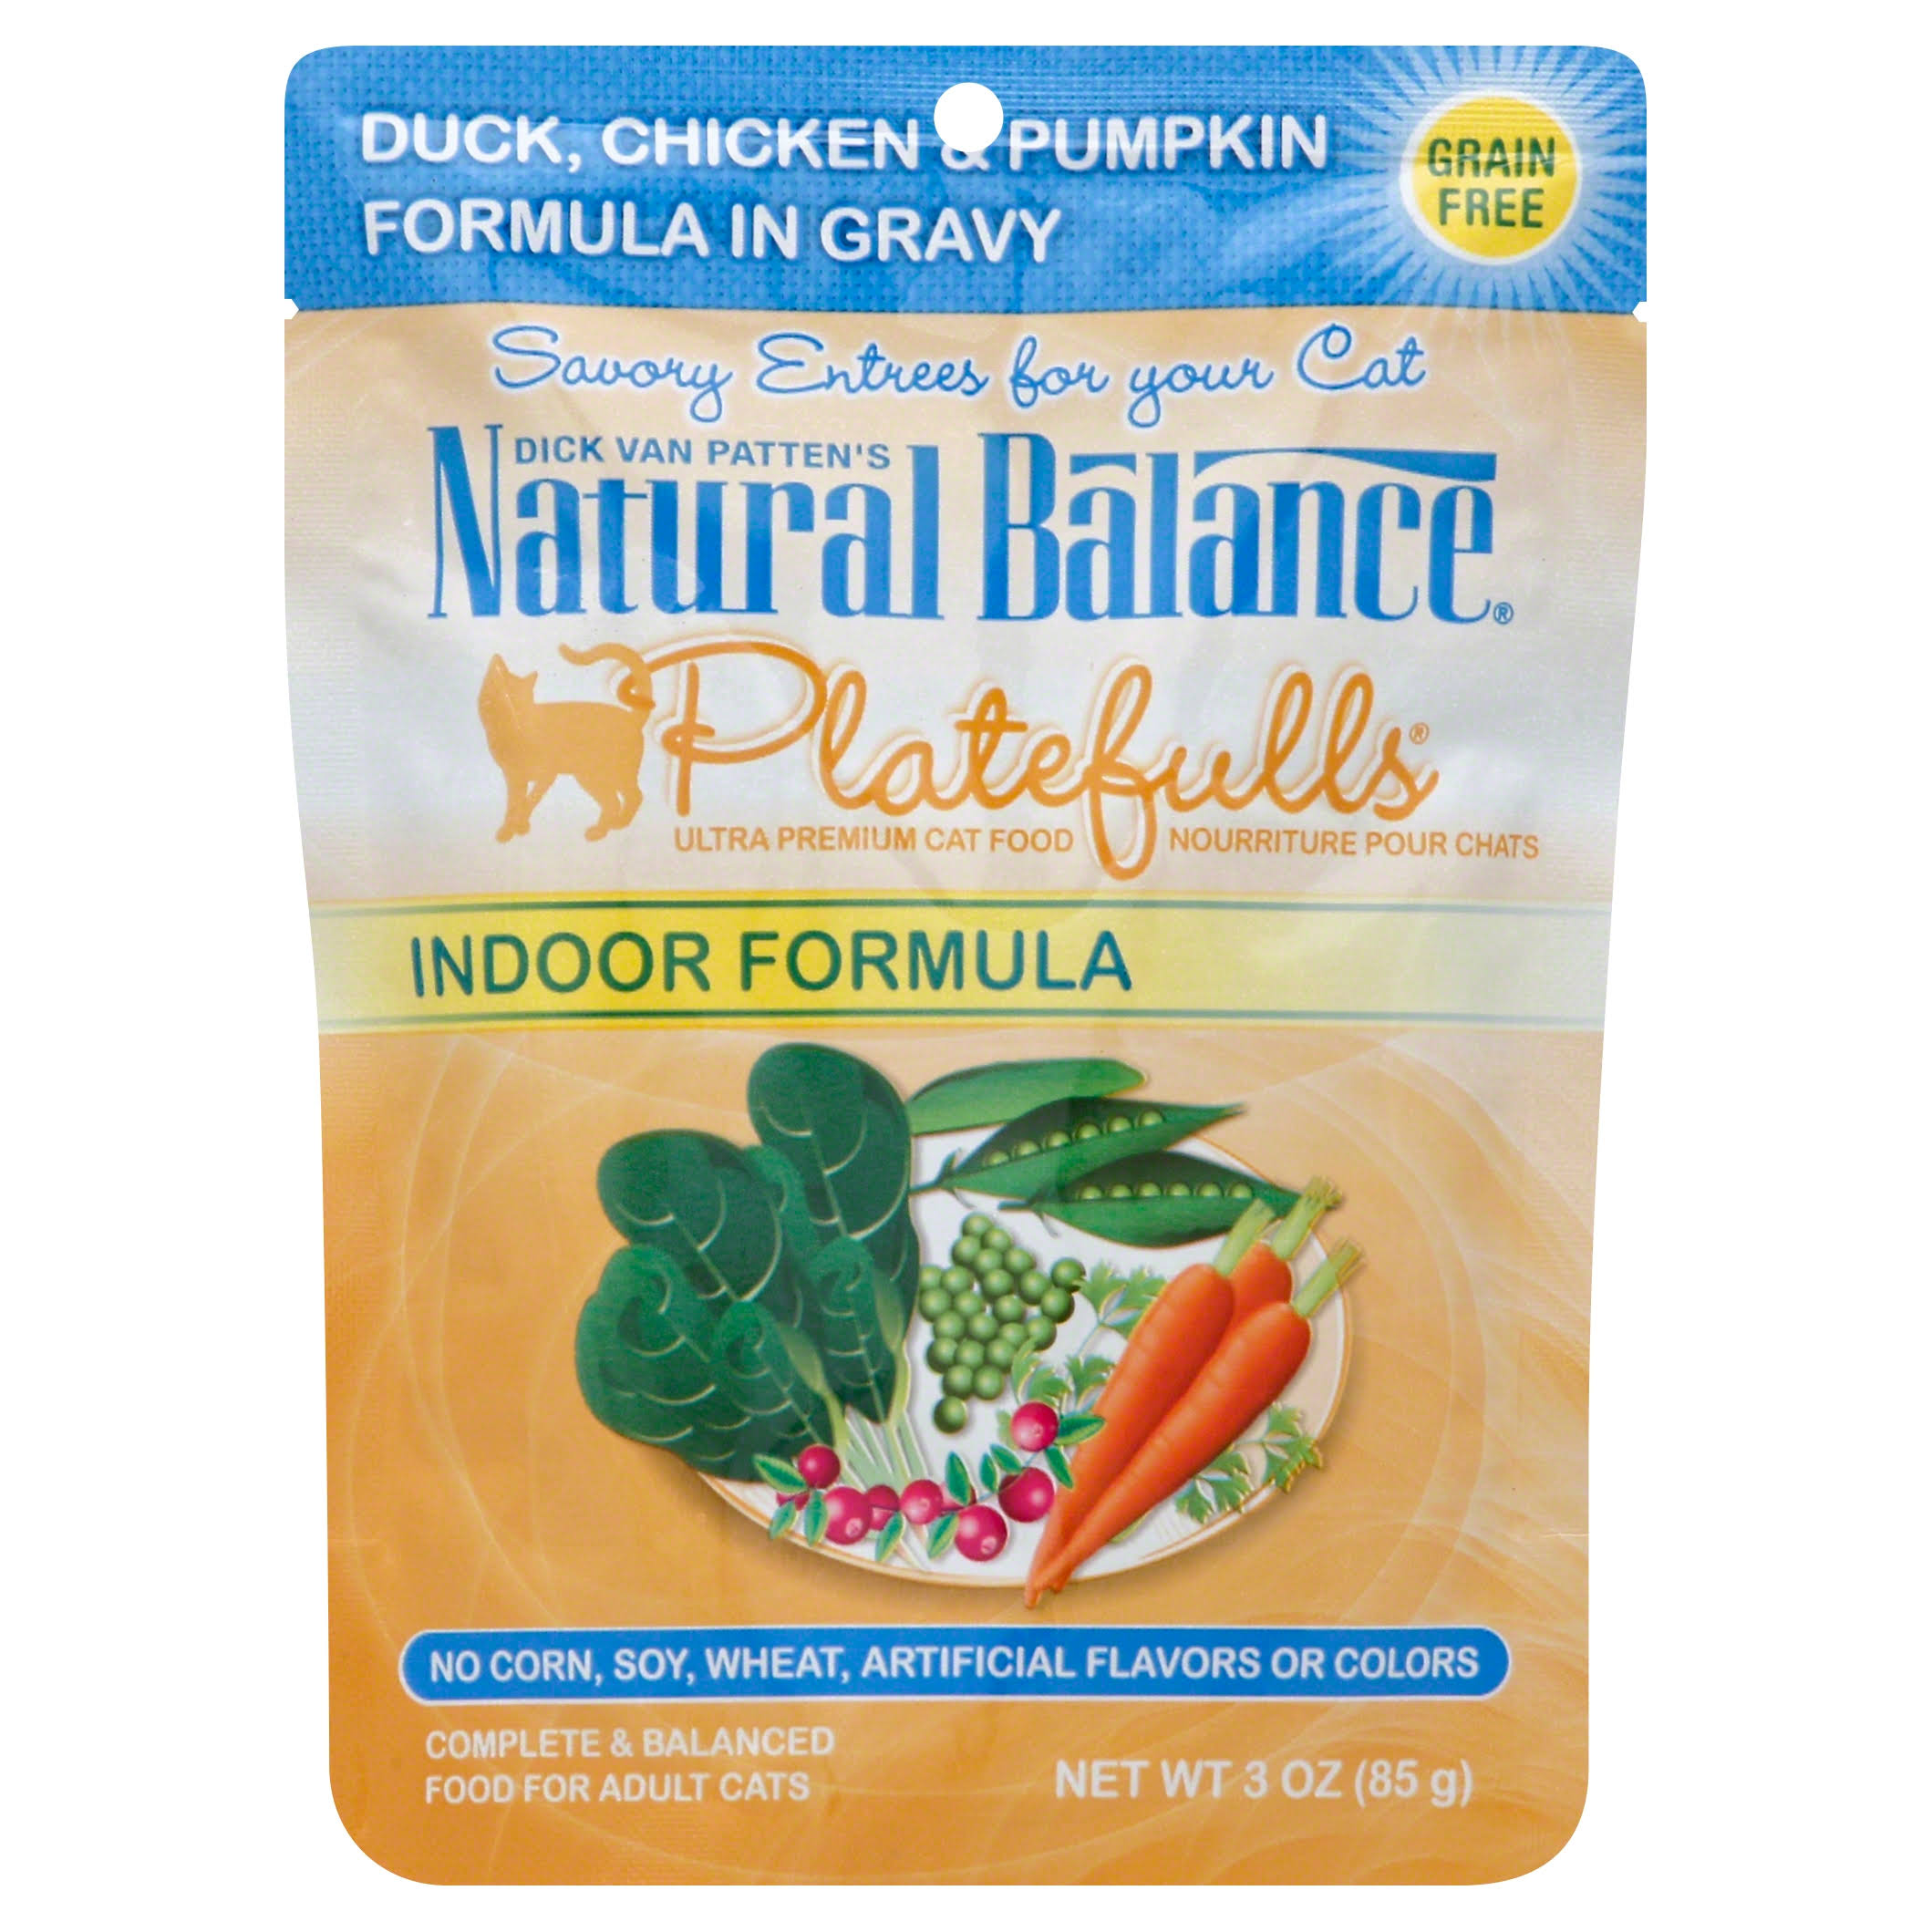 Natural Balance Platefulls Cat Food - Duck Chicken & Pumpkin Formula In Gravy